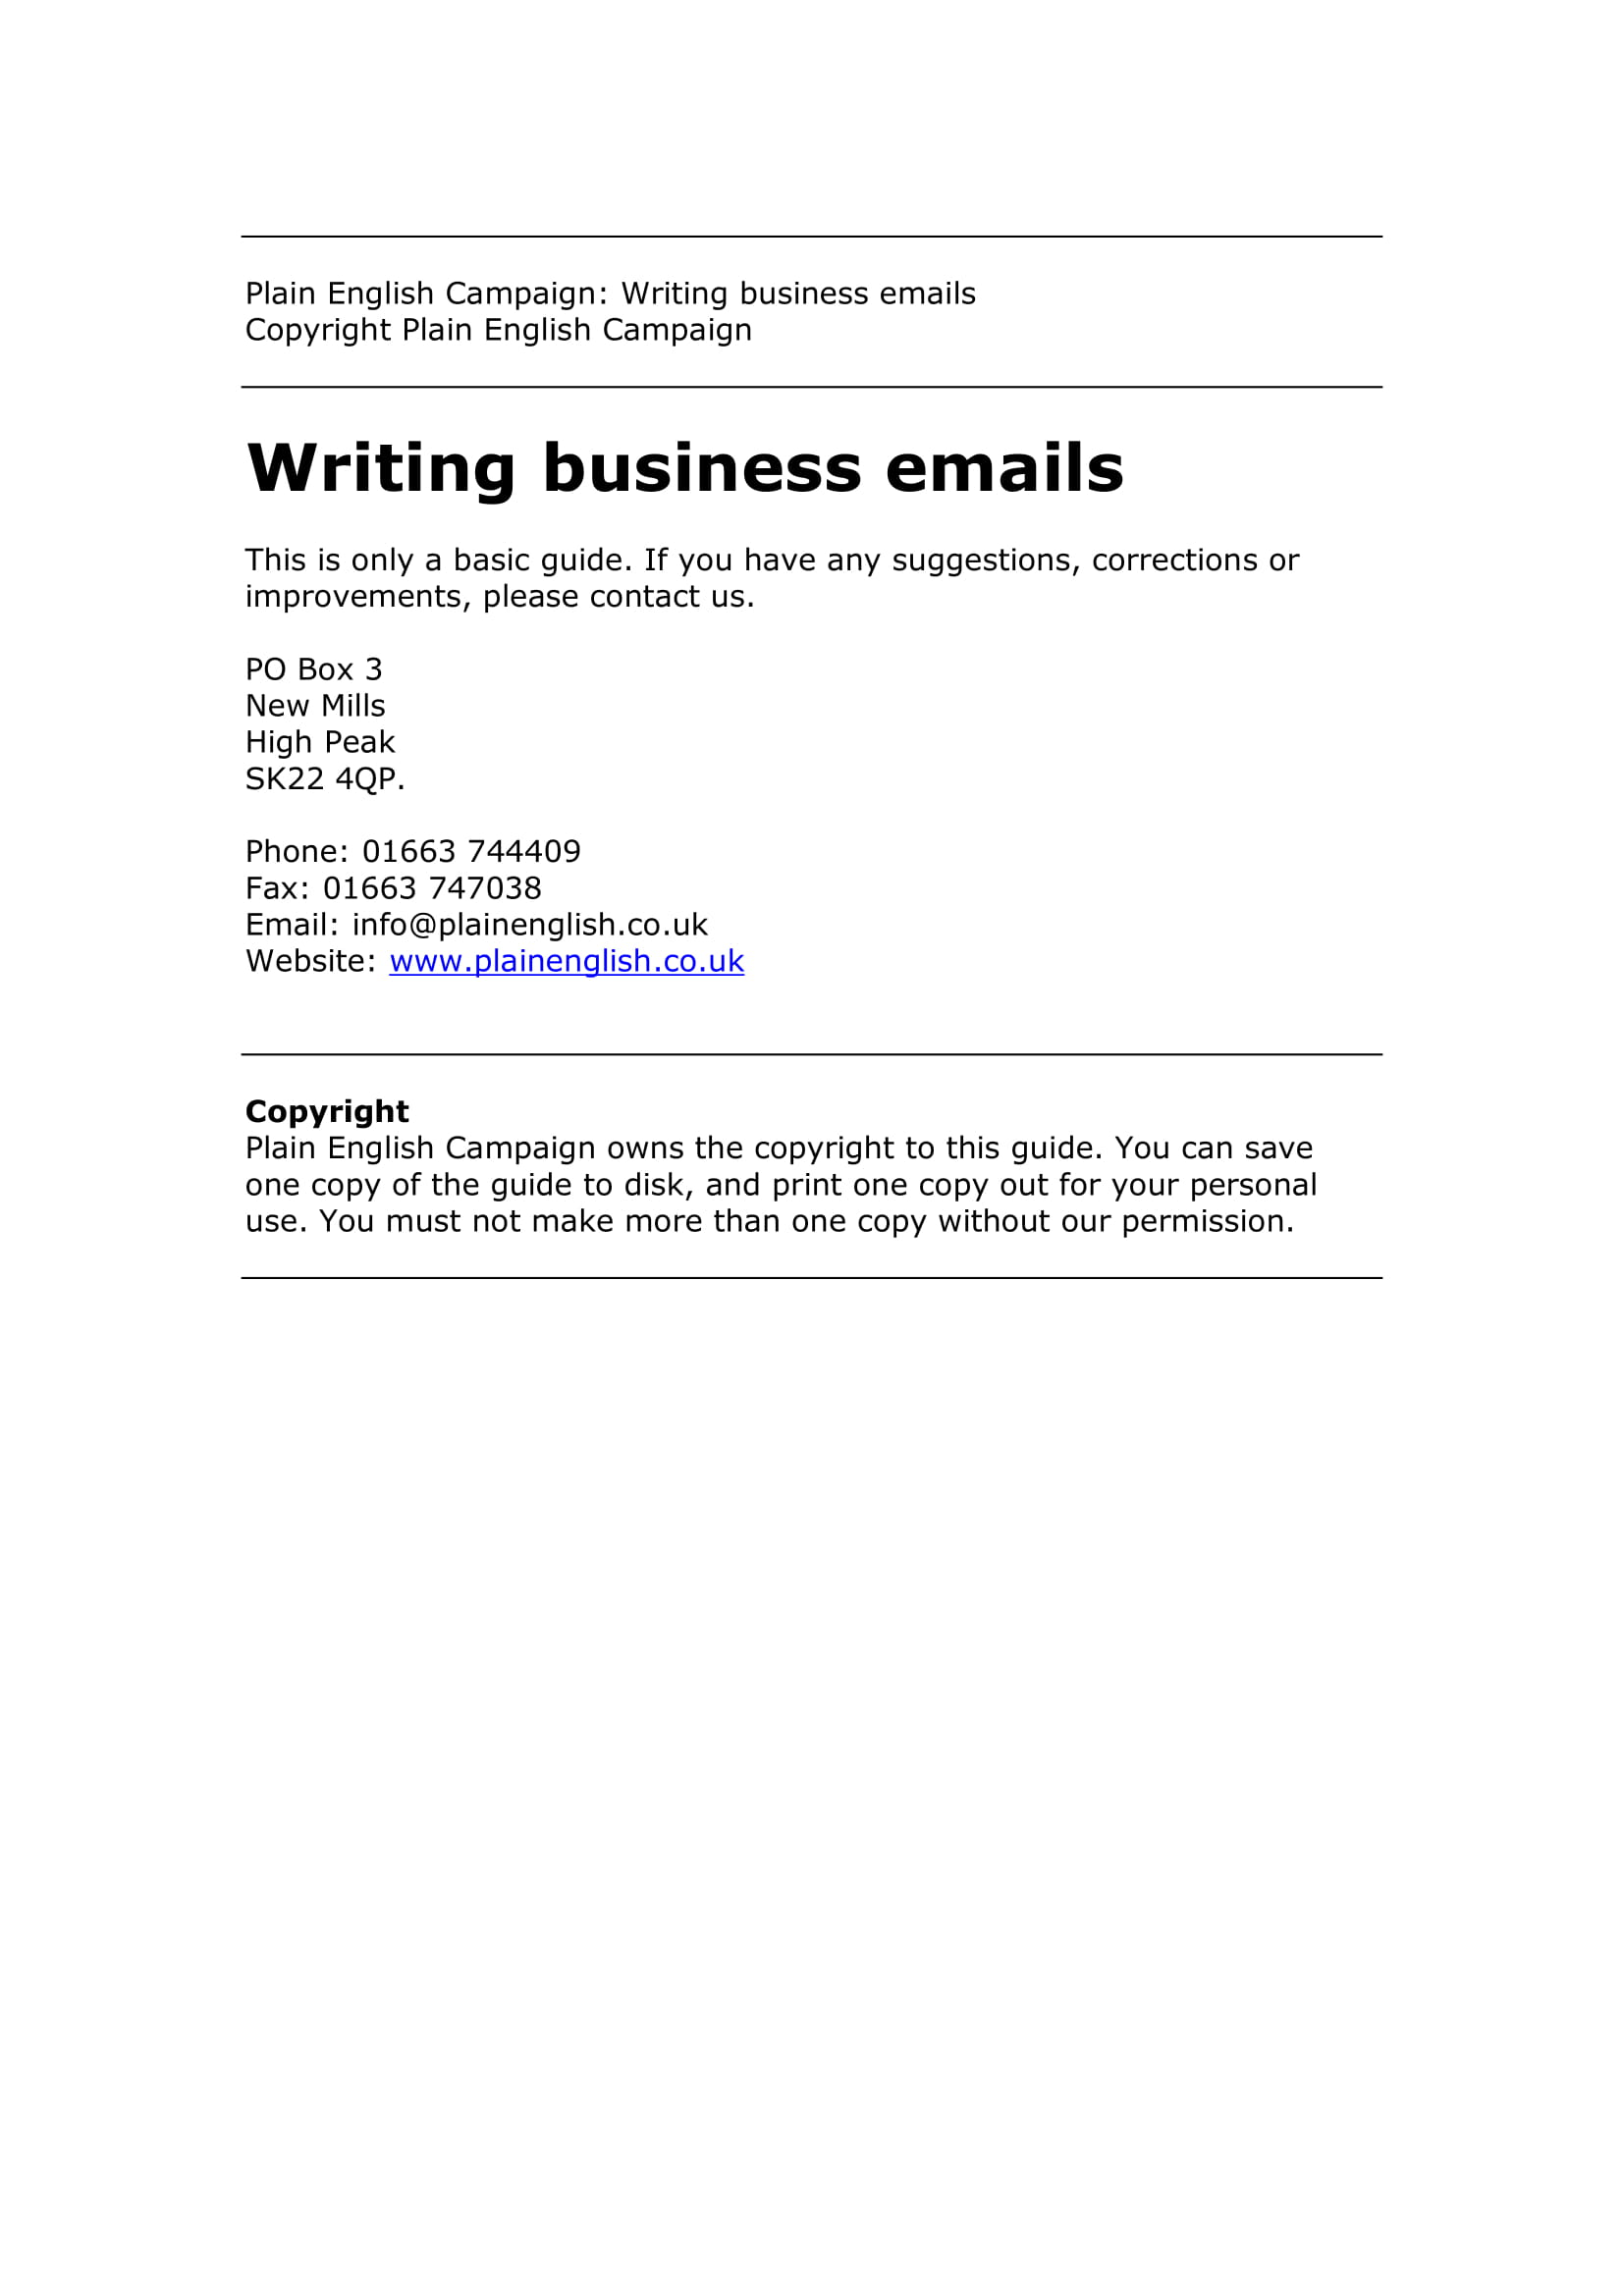 email in english example business